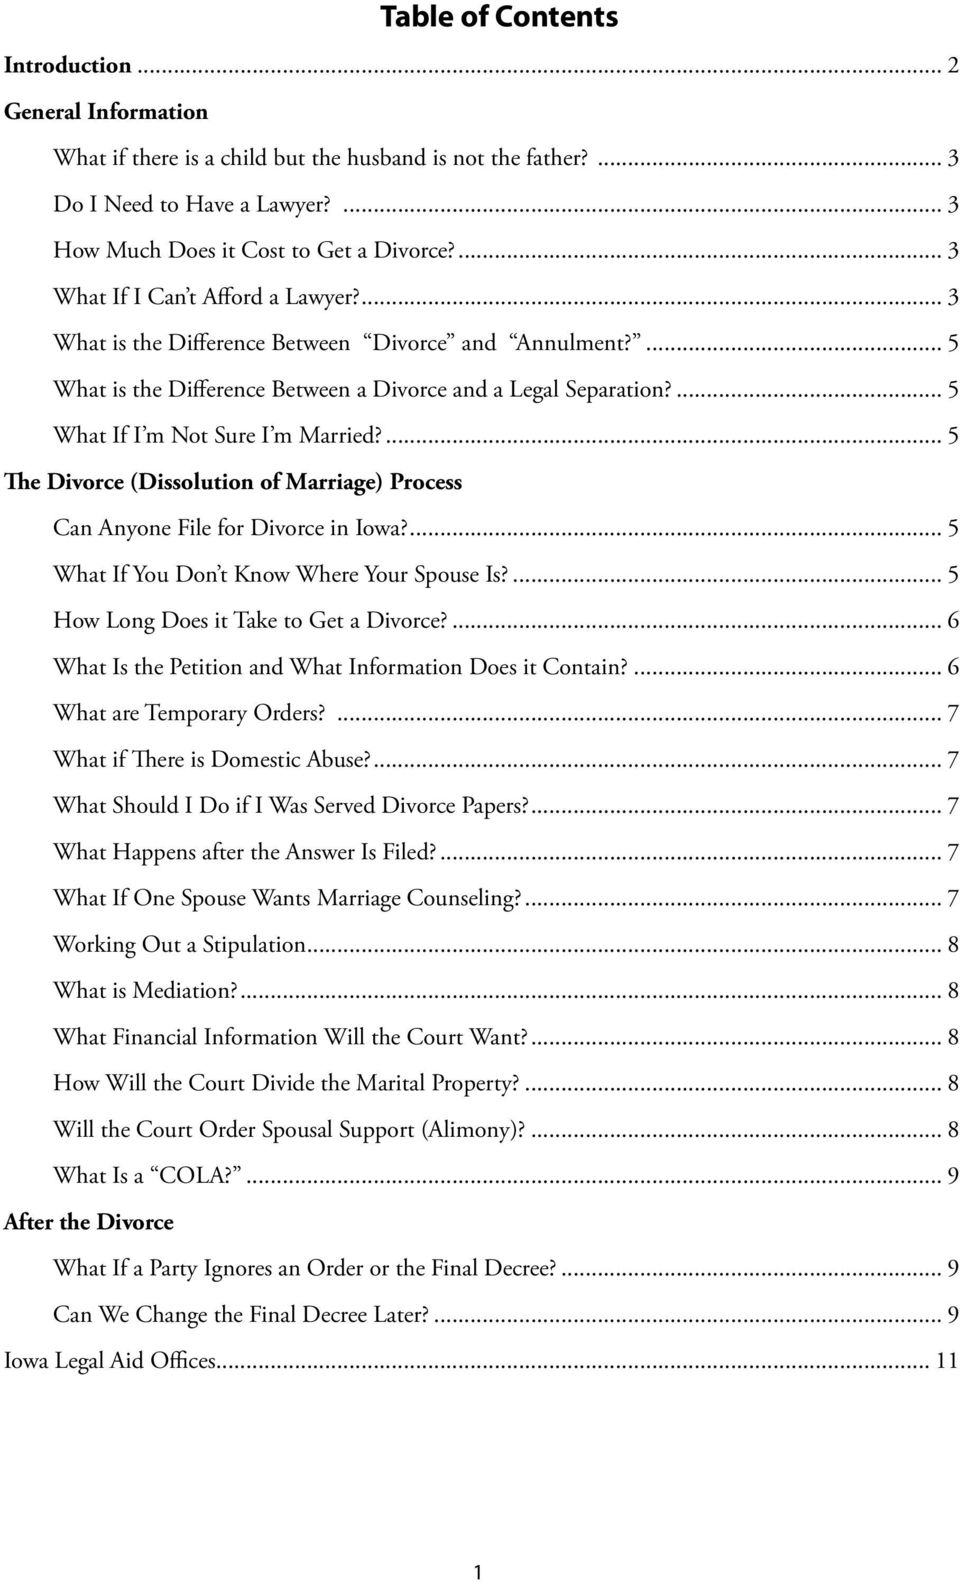 ... 5 What If I m Not Sure I m Married?... 5 The Divorce (Dissolution of Marriage) Process Can Anyone File for Divorce in Iowa?... 5 What If You Don t Know Where Your Spouse Is?